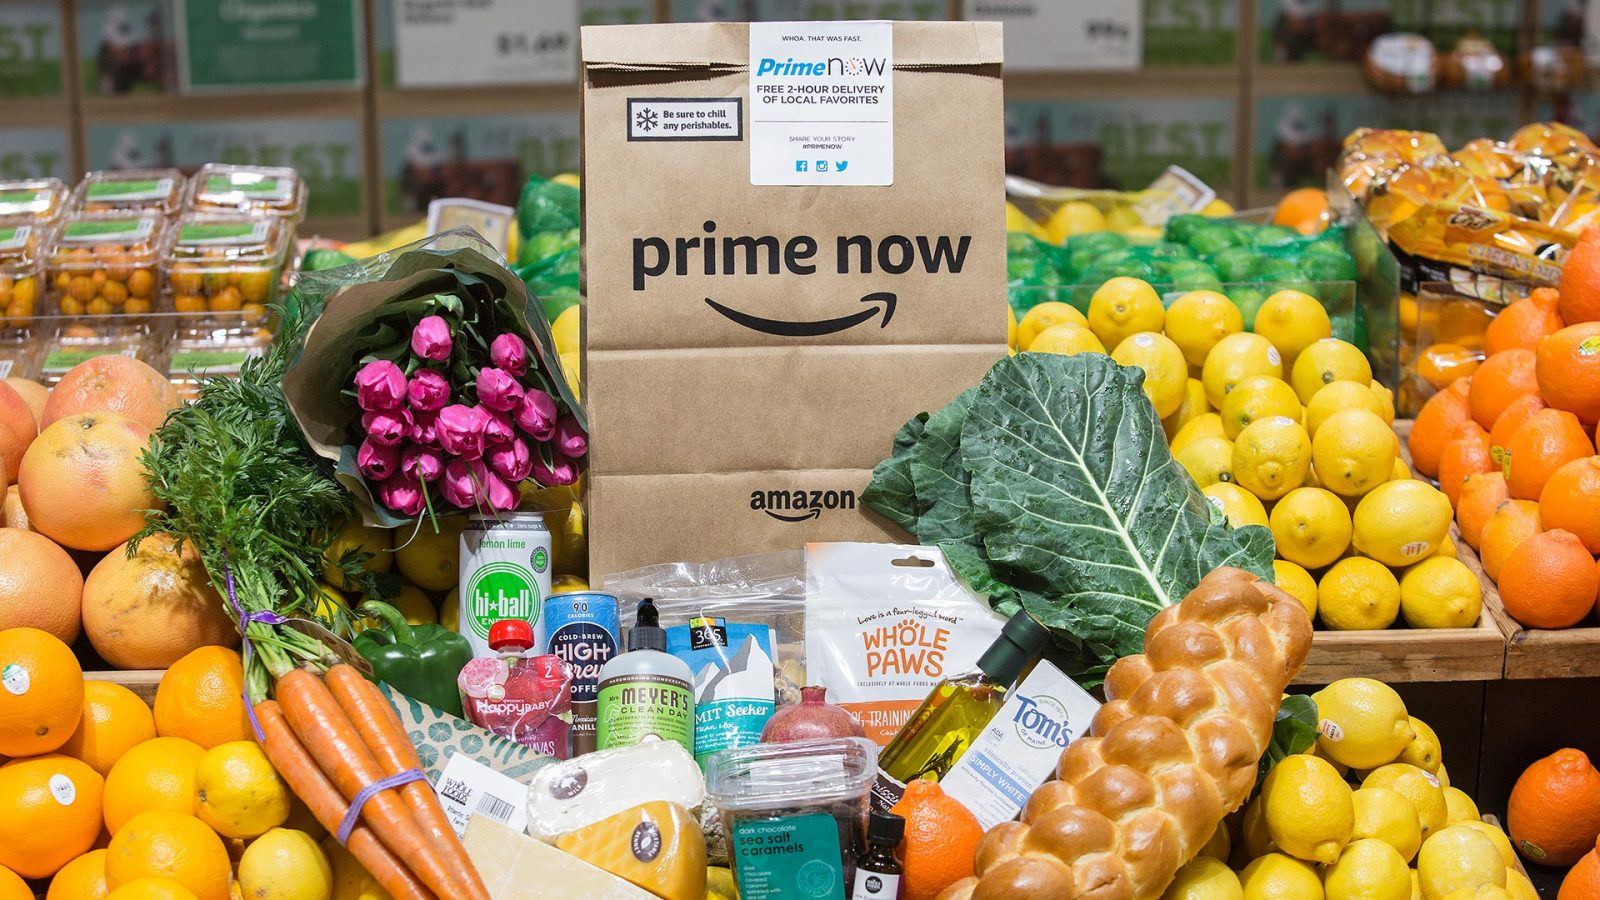 Amazon rumored to launch new benefits for Prime members at Whole Foods